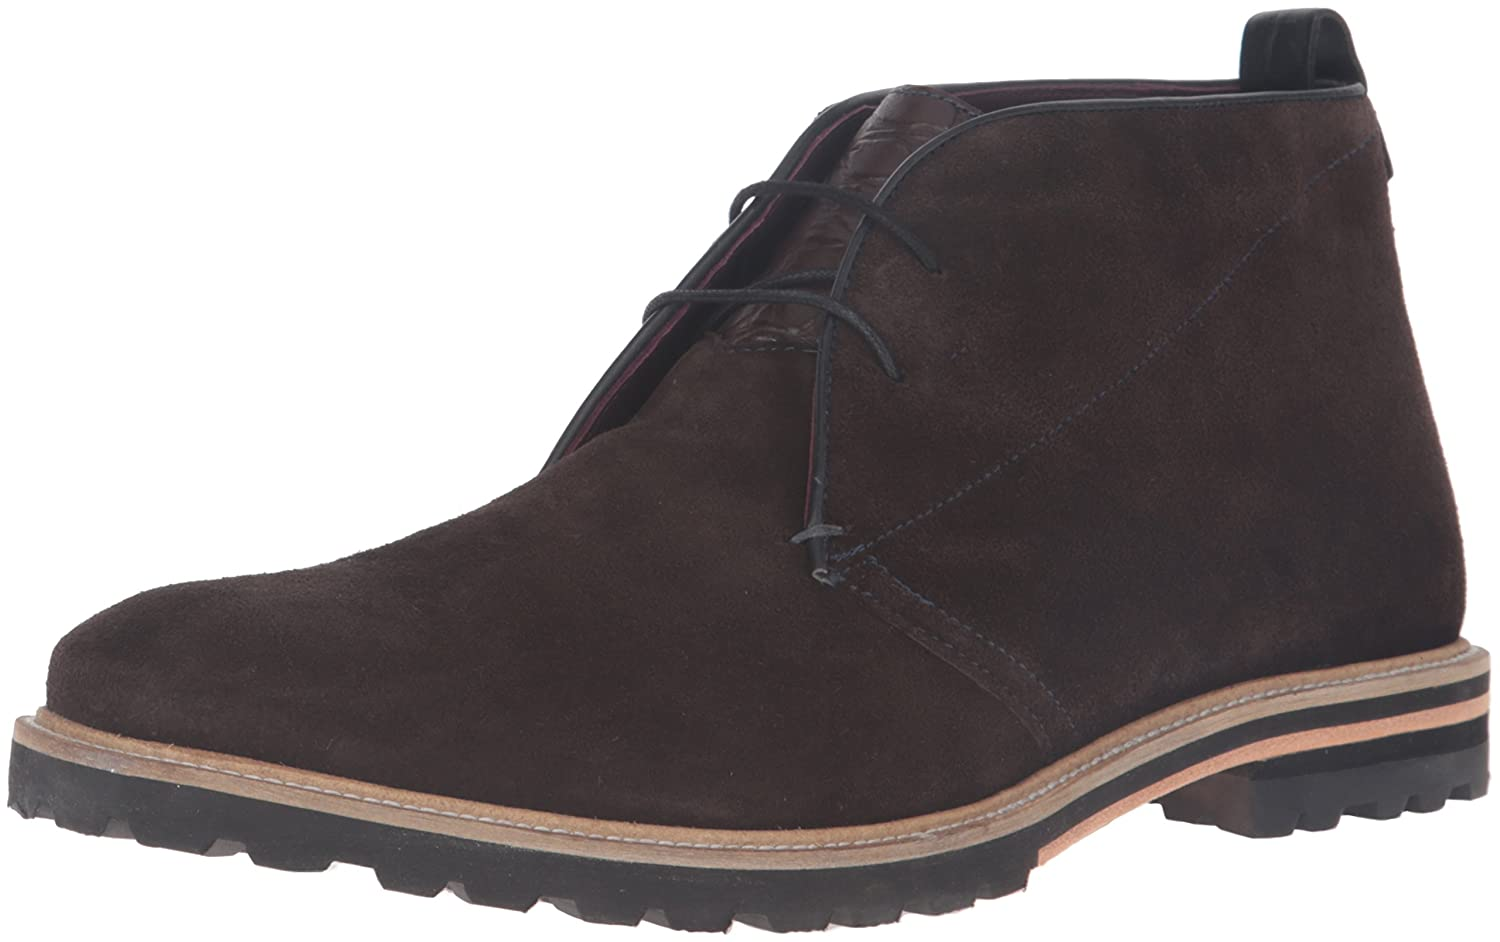 43d1b034596a9 Amazon.com  Ted Baker Men s Maagna Chukka Boot  Shoes